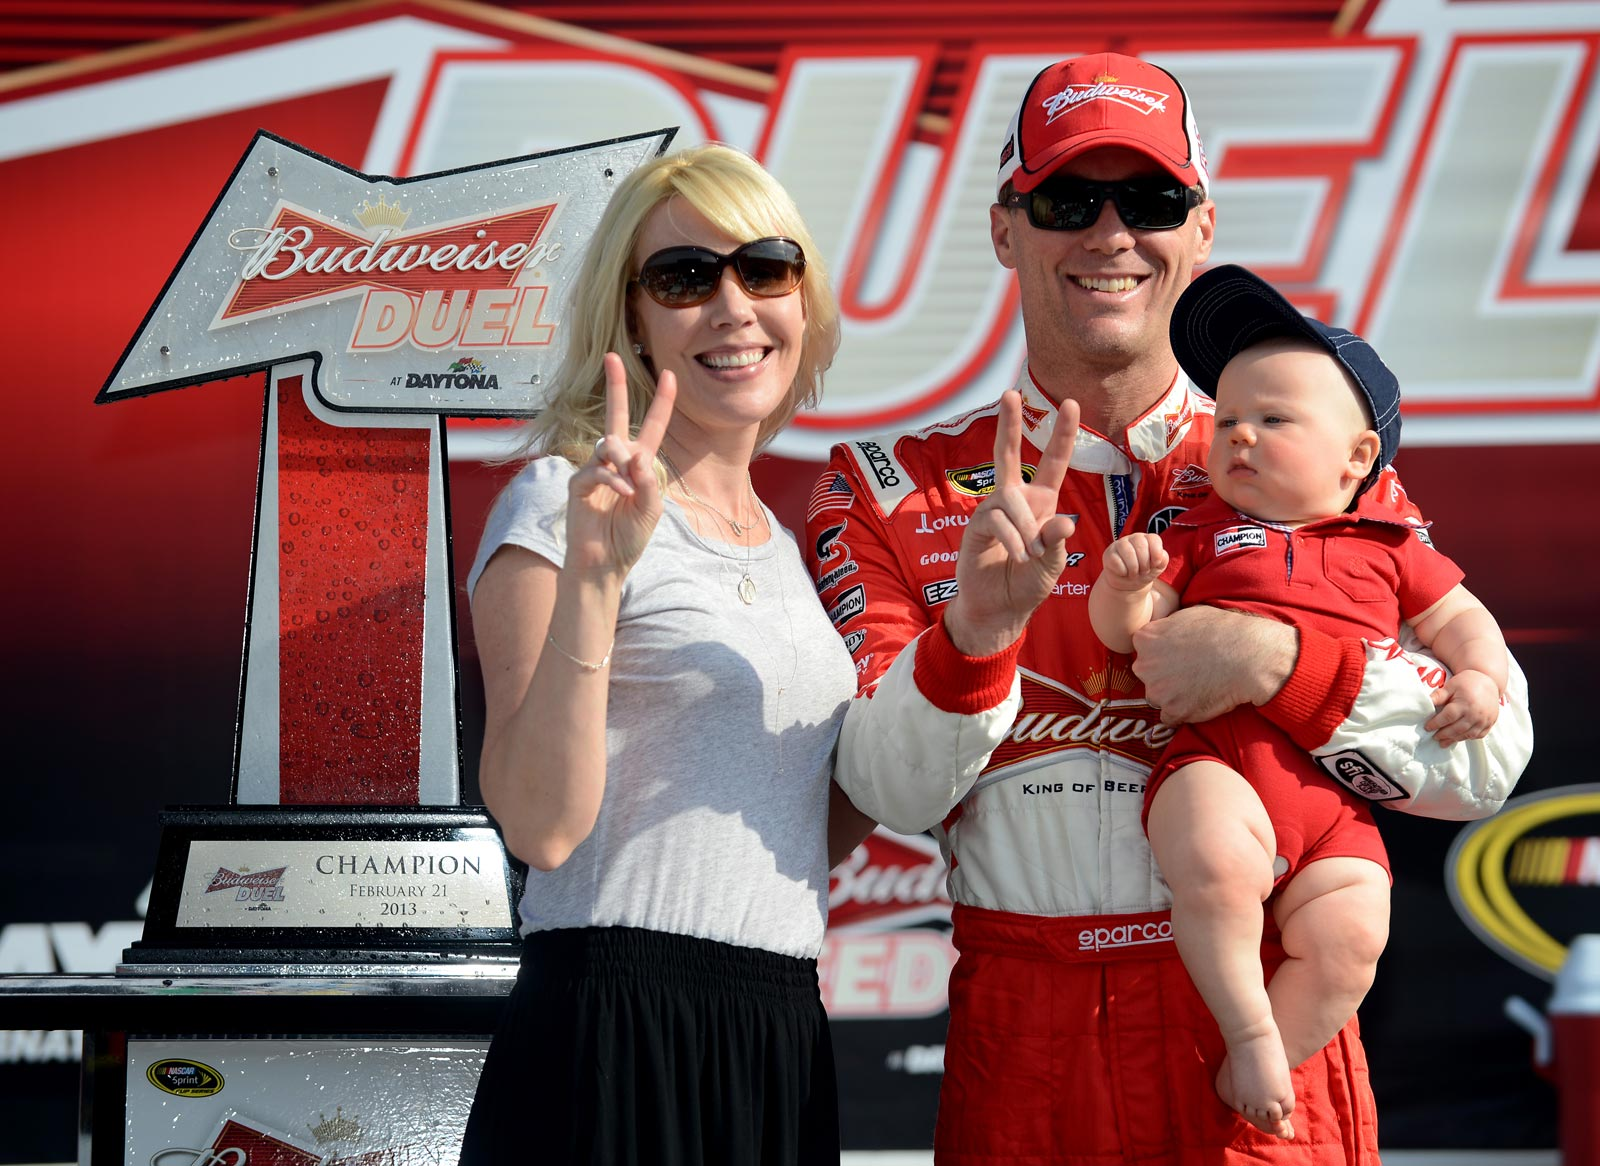 Kevin-Harvick-victory-lane-family-first-duel-NASCAR-Daytona-500-2013